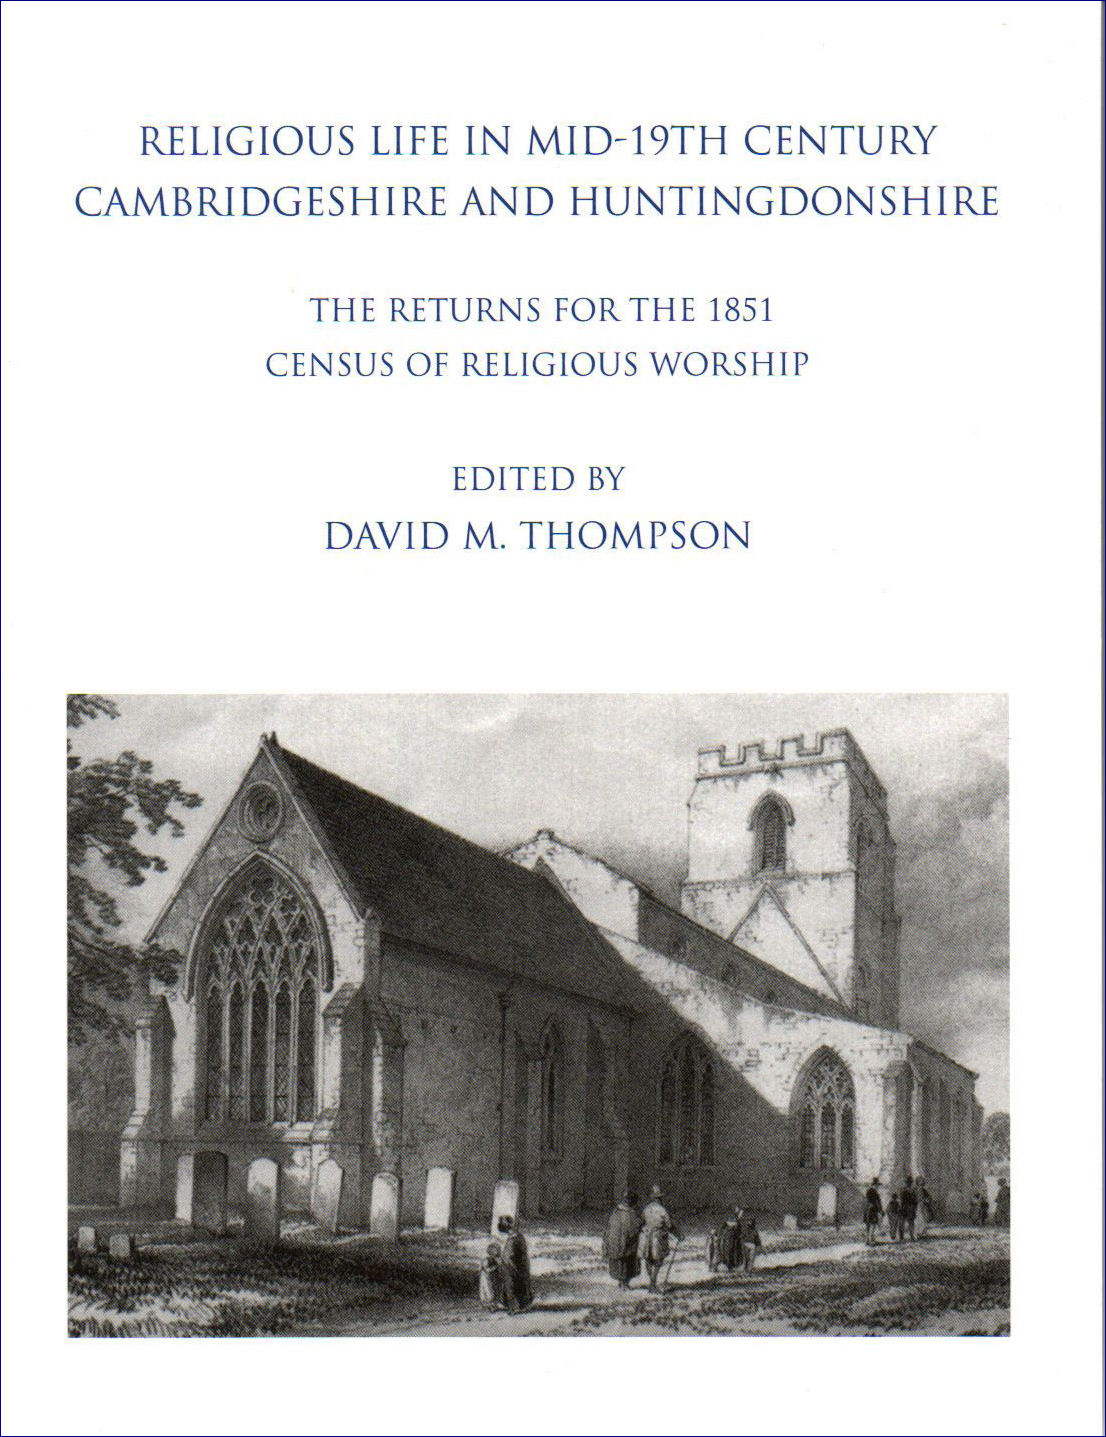 21. Religious Life in Mid-19th Century Cambridgeshire and Huntingdonshire: The Returns for the 1851 Census of Religious Worship. Edited by David M. Thompson